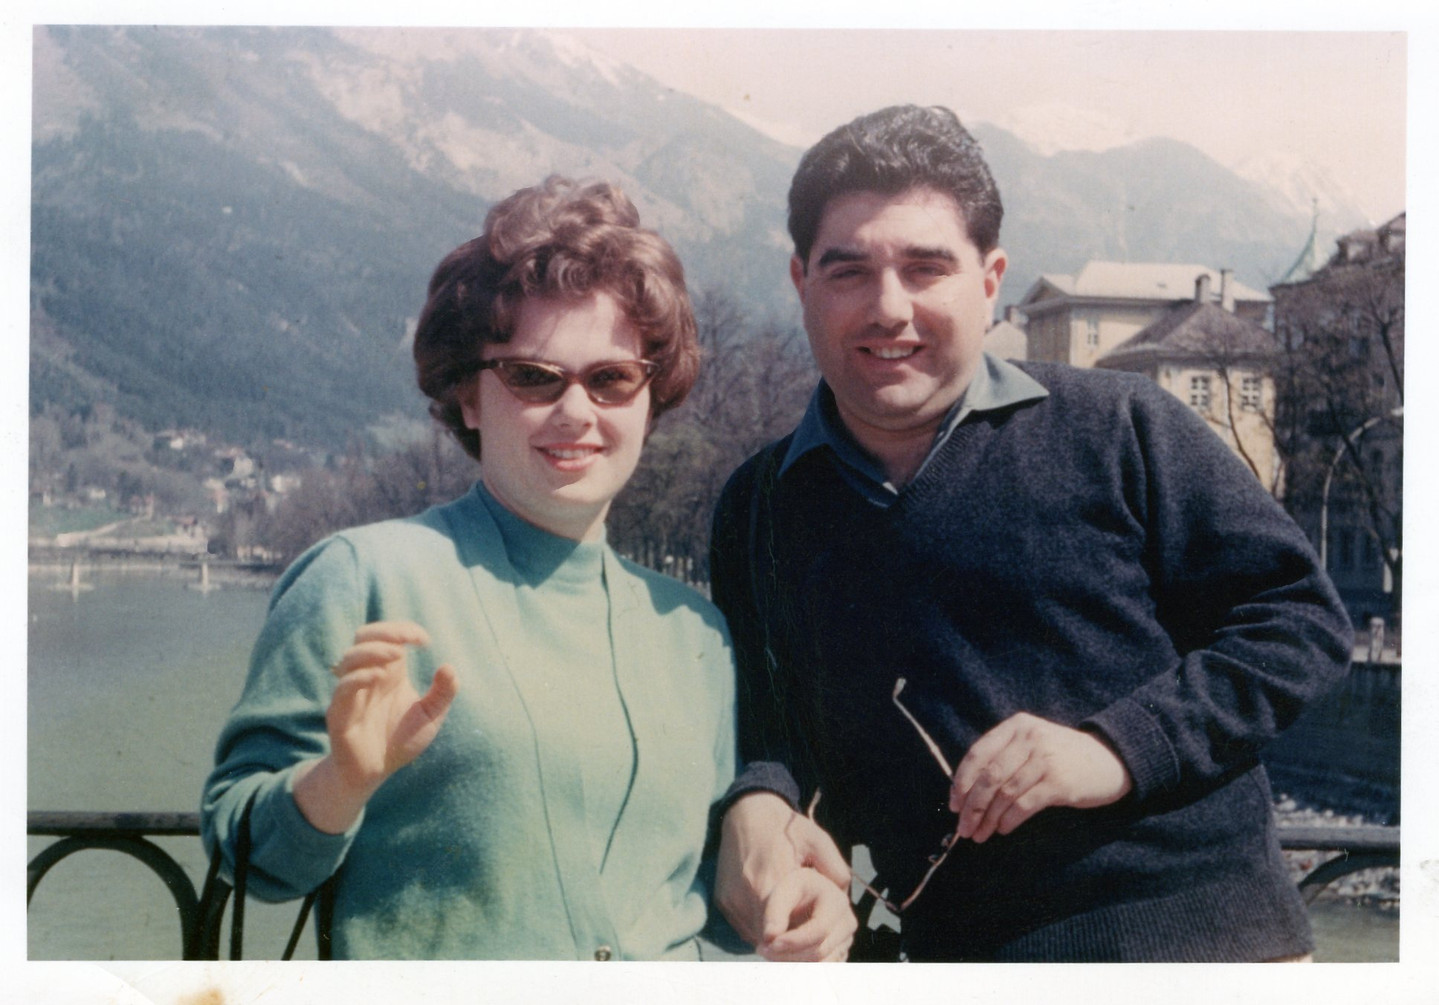 Honeymoon, 1964